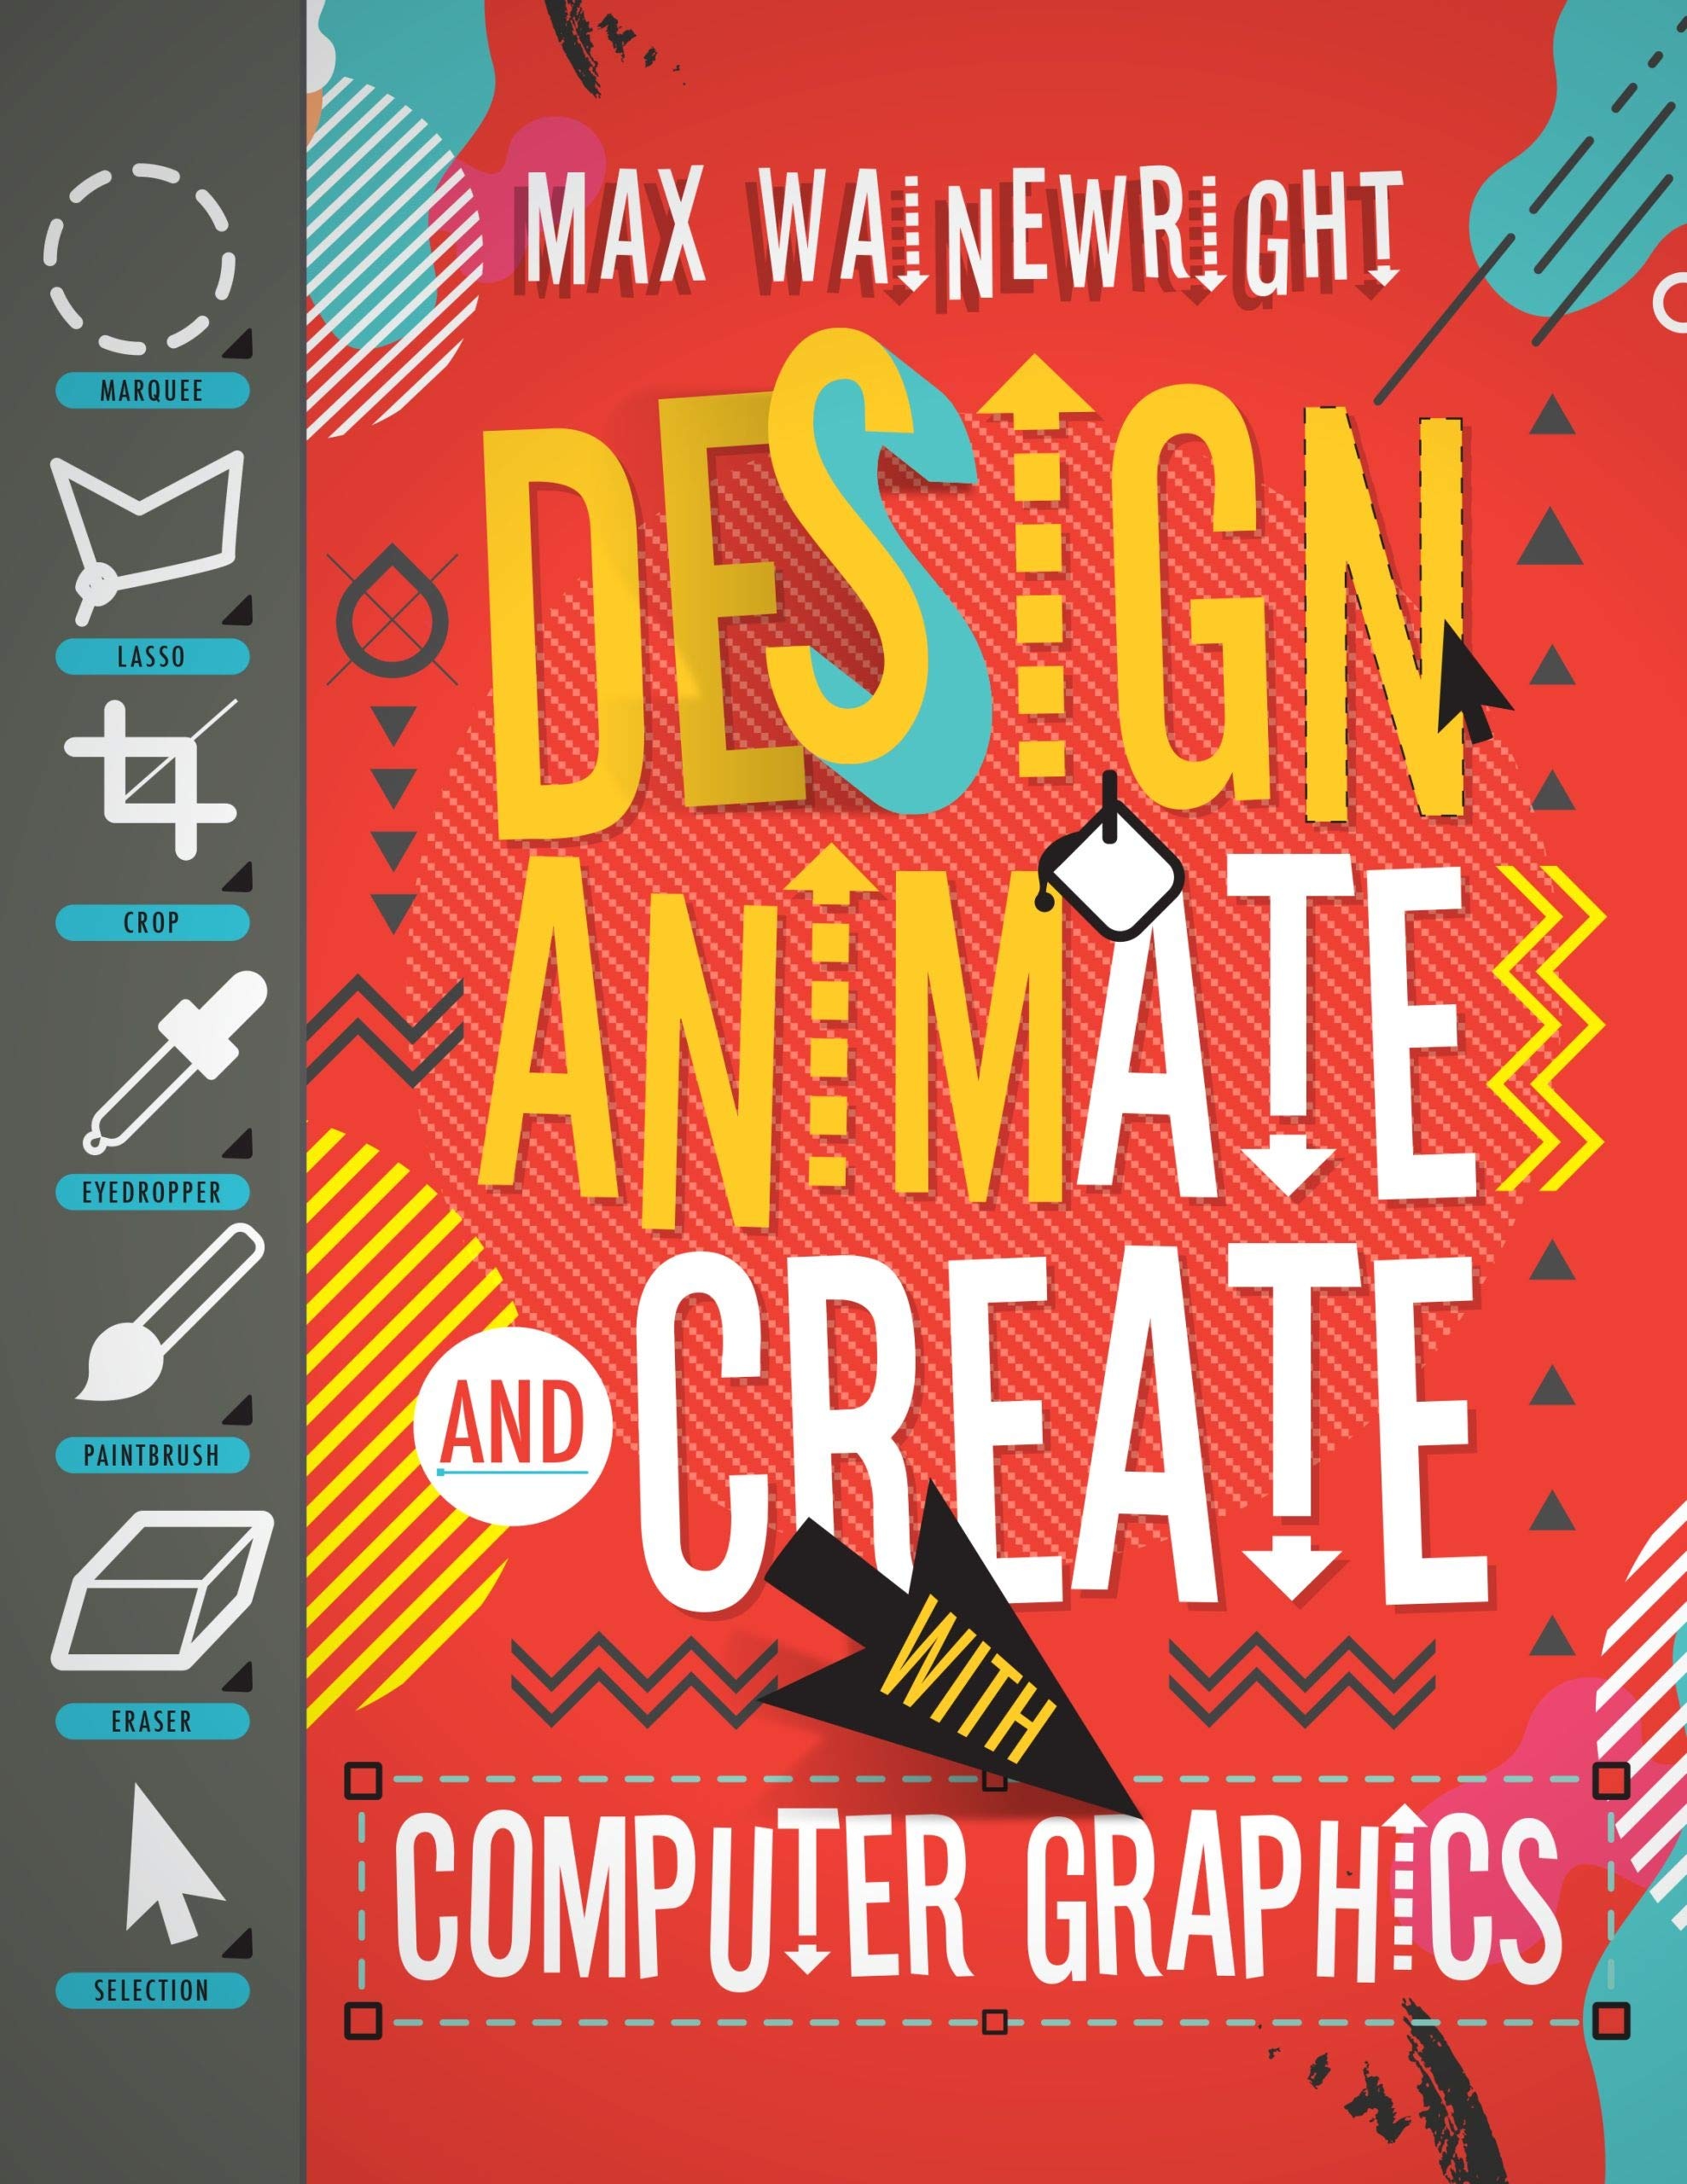 Design, Animate, and Create with Computer Graphics: Max